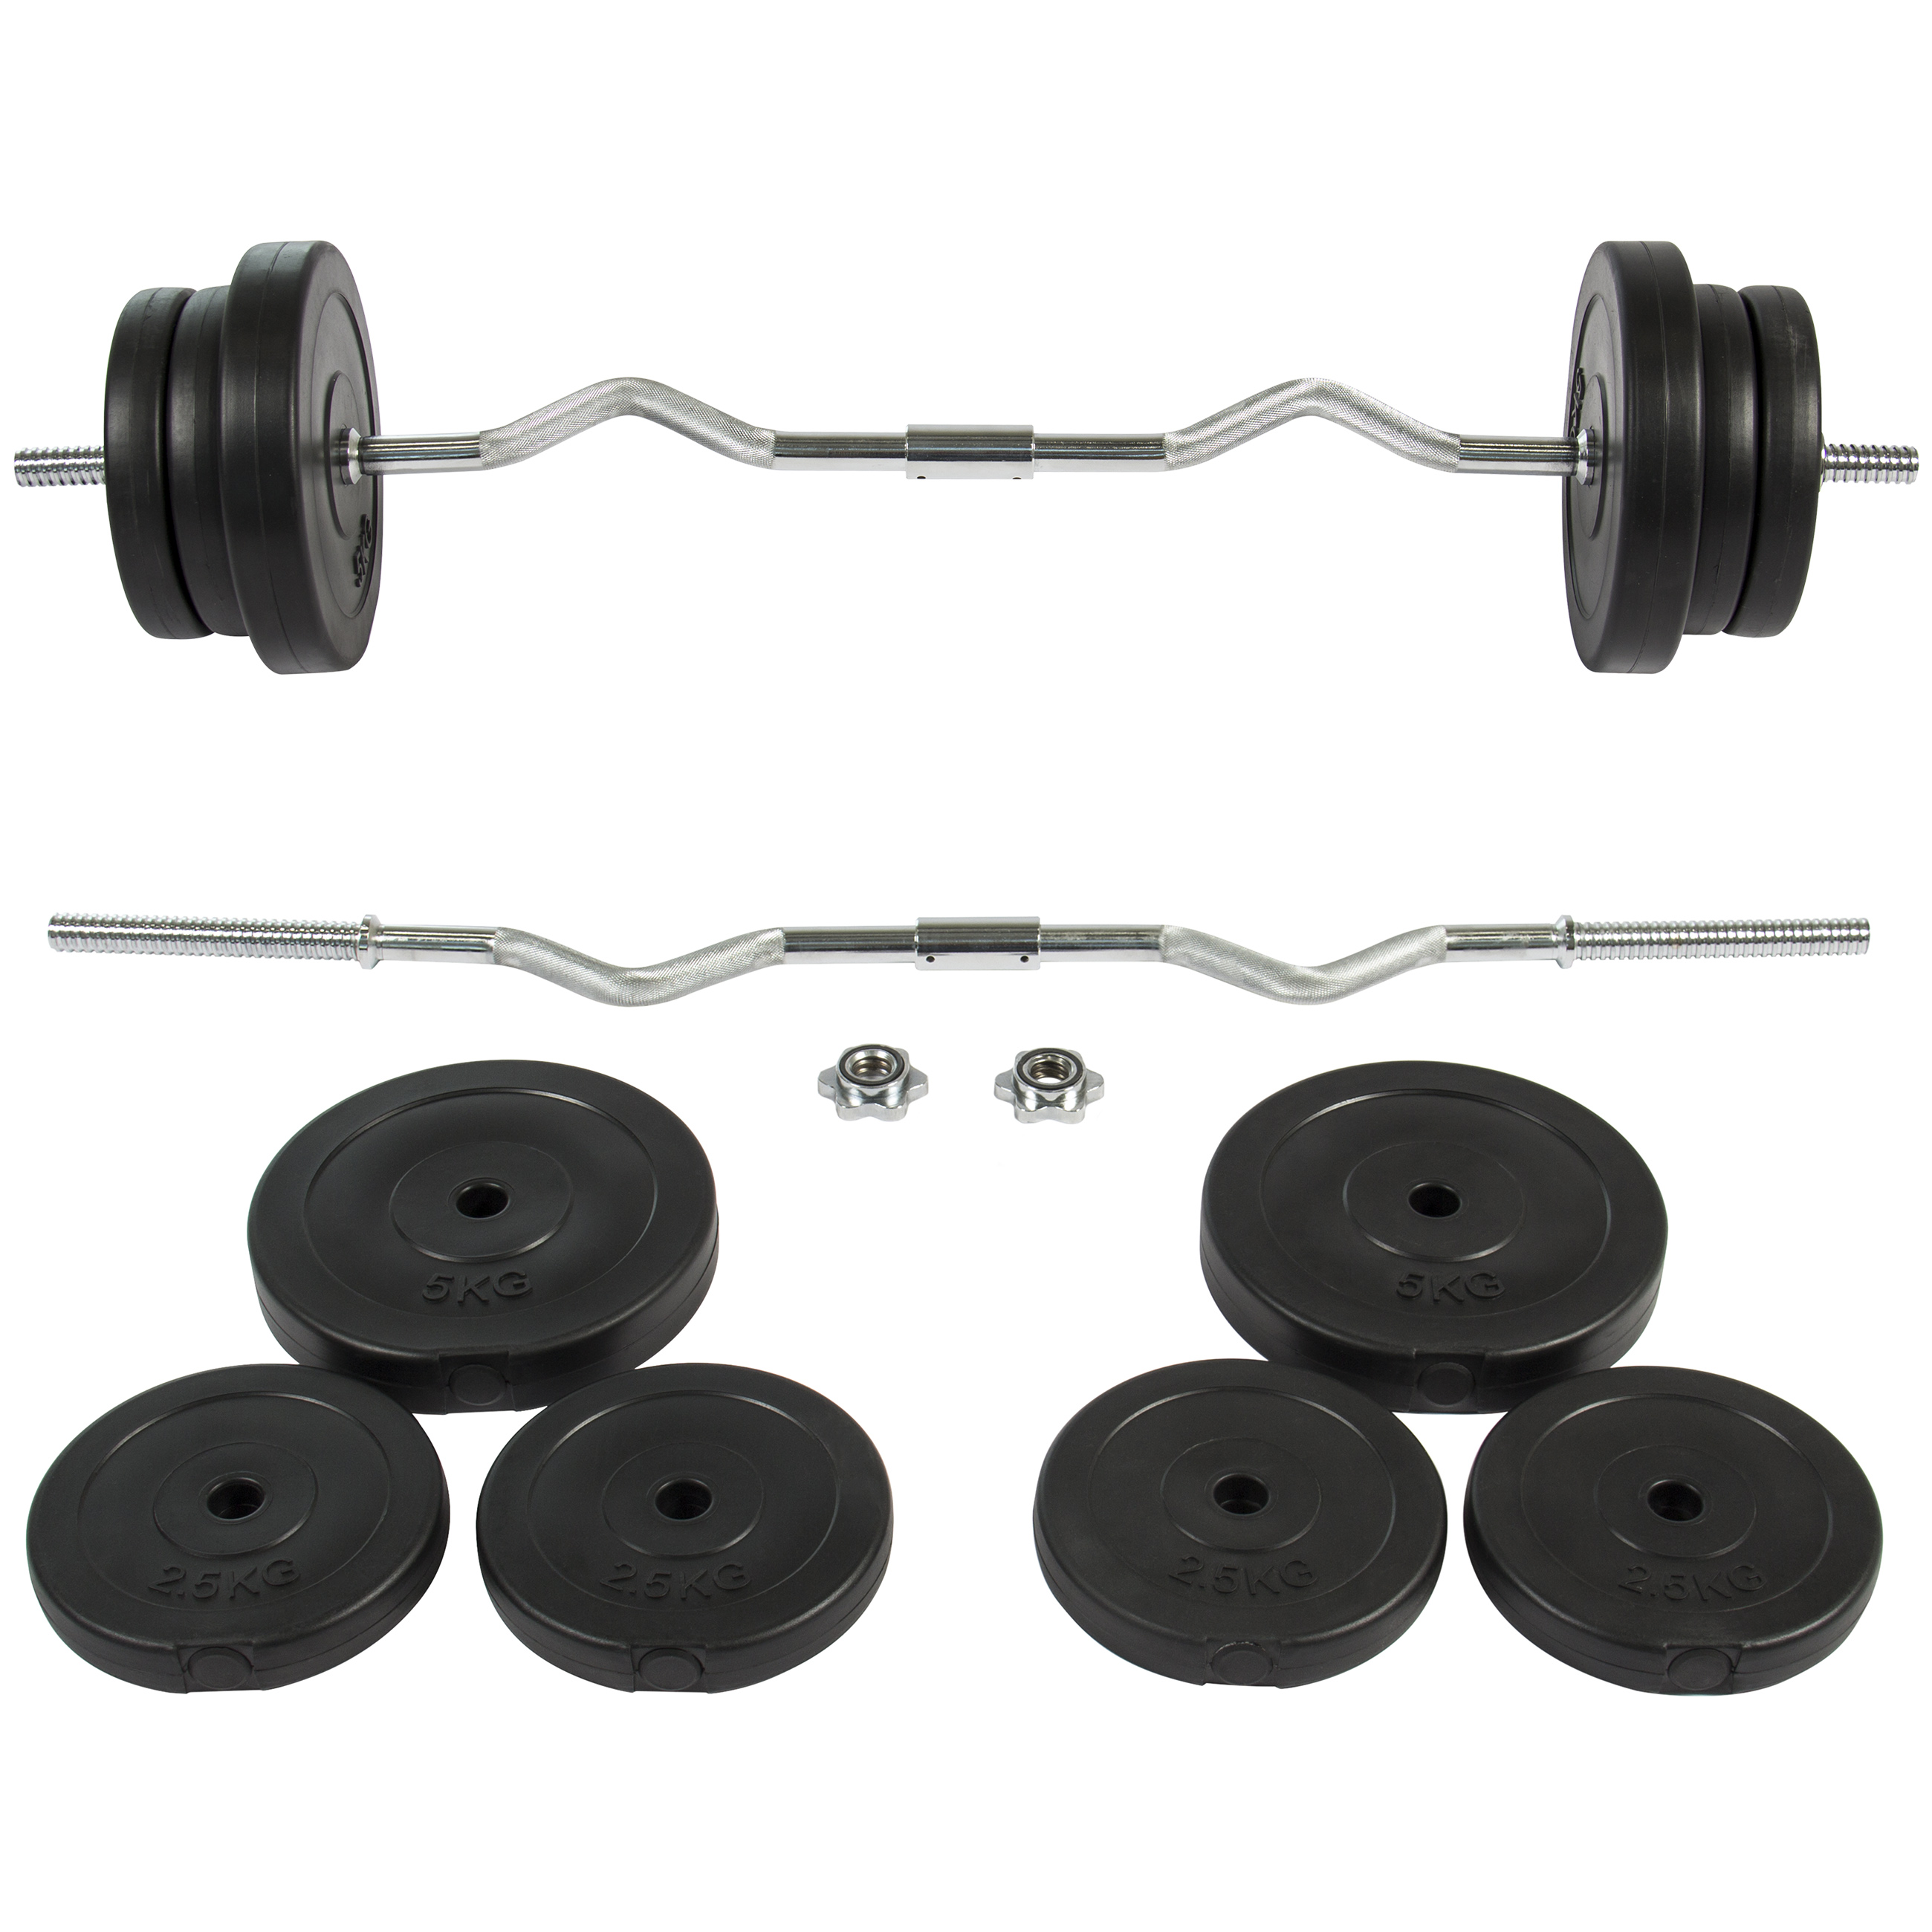 Bcp Barbell Dumbbell Ez Curl Bar Weight Set Gym Lifting Exercise Workout